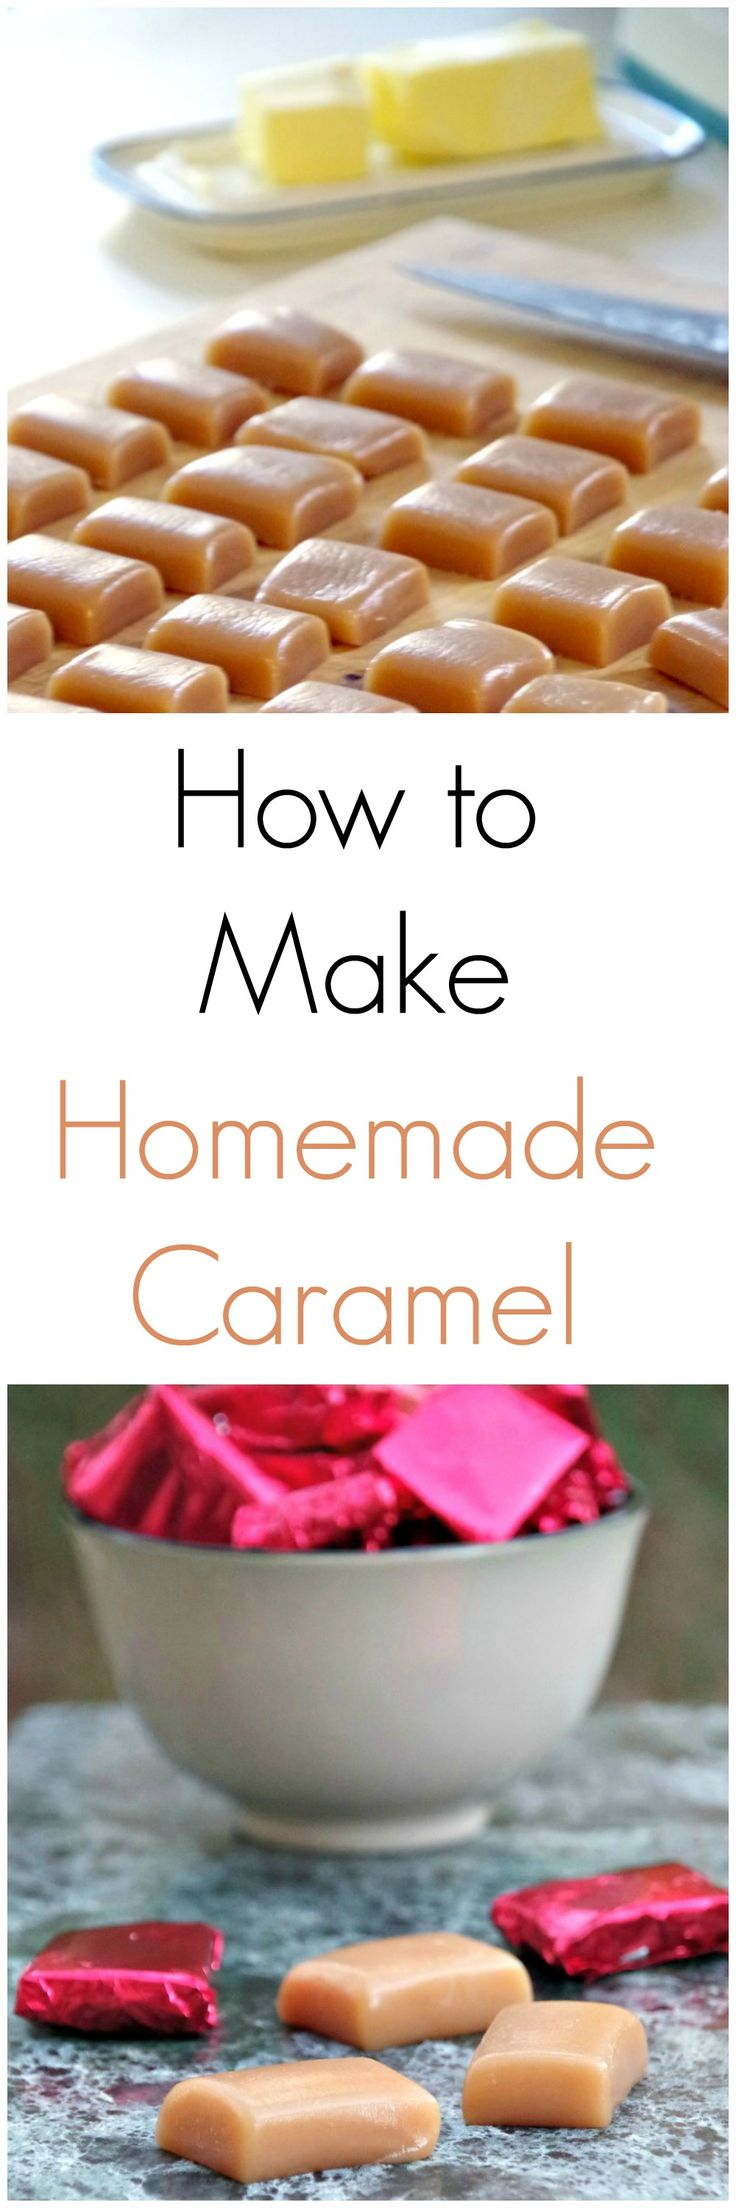 Learn how to make homemade caramel  Makes a great homemade gift idea or just an easy homemade candy recipe to enjoy with the kids!